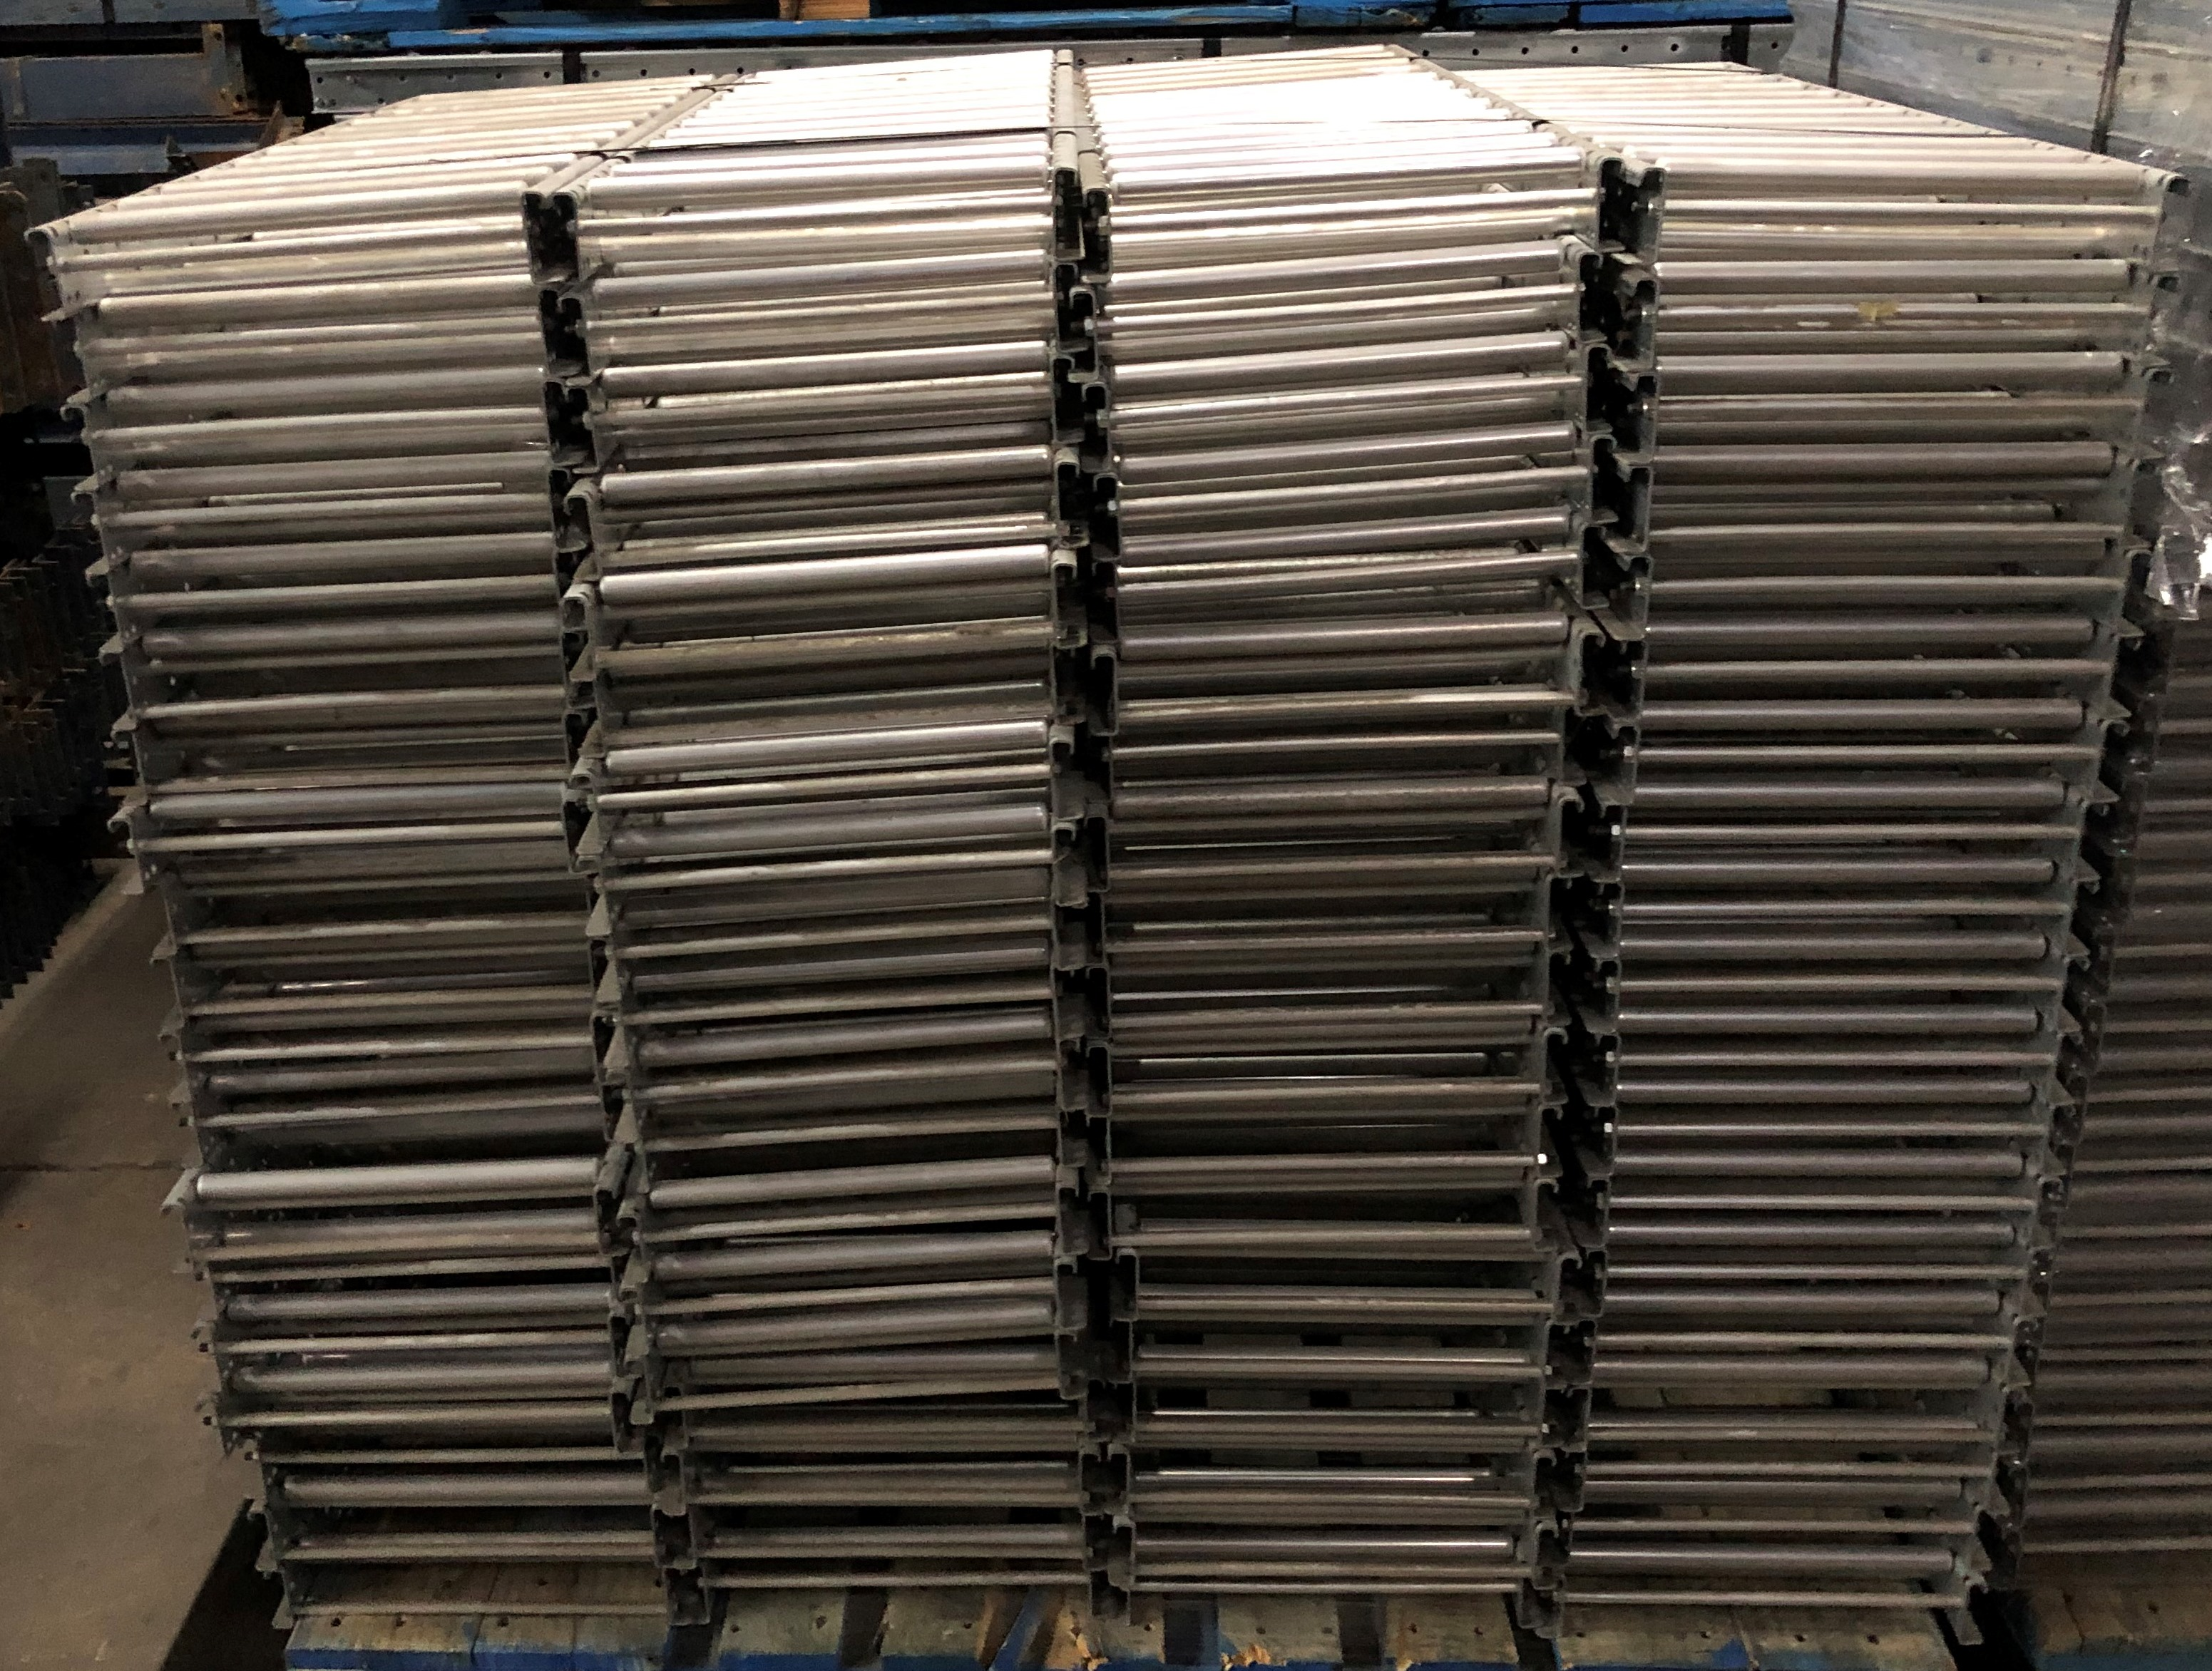 Lot 24 - 20 PCS OF USED SPAN TRACK